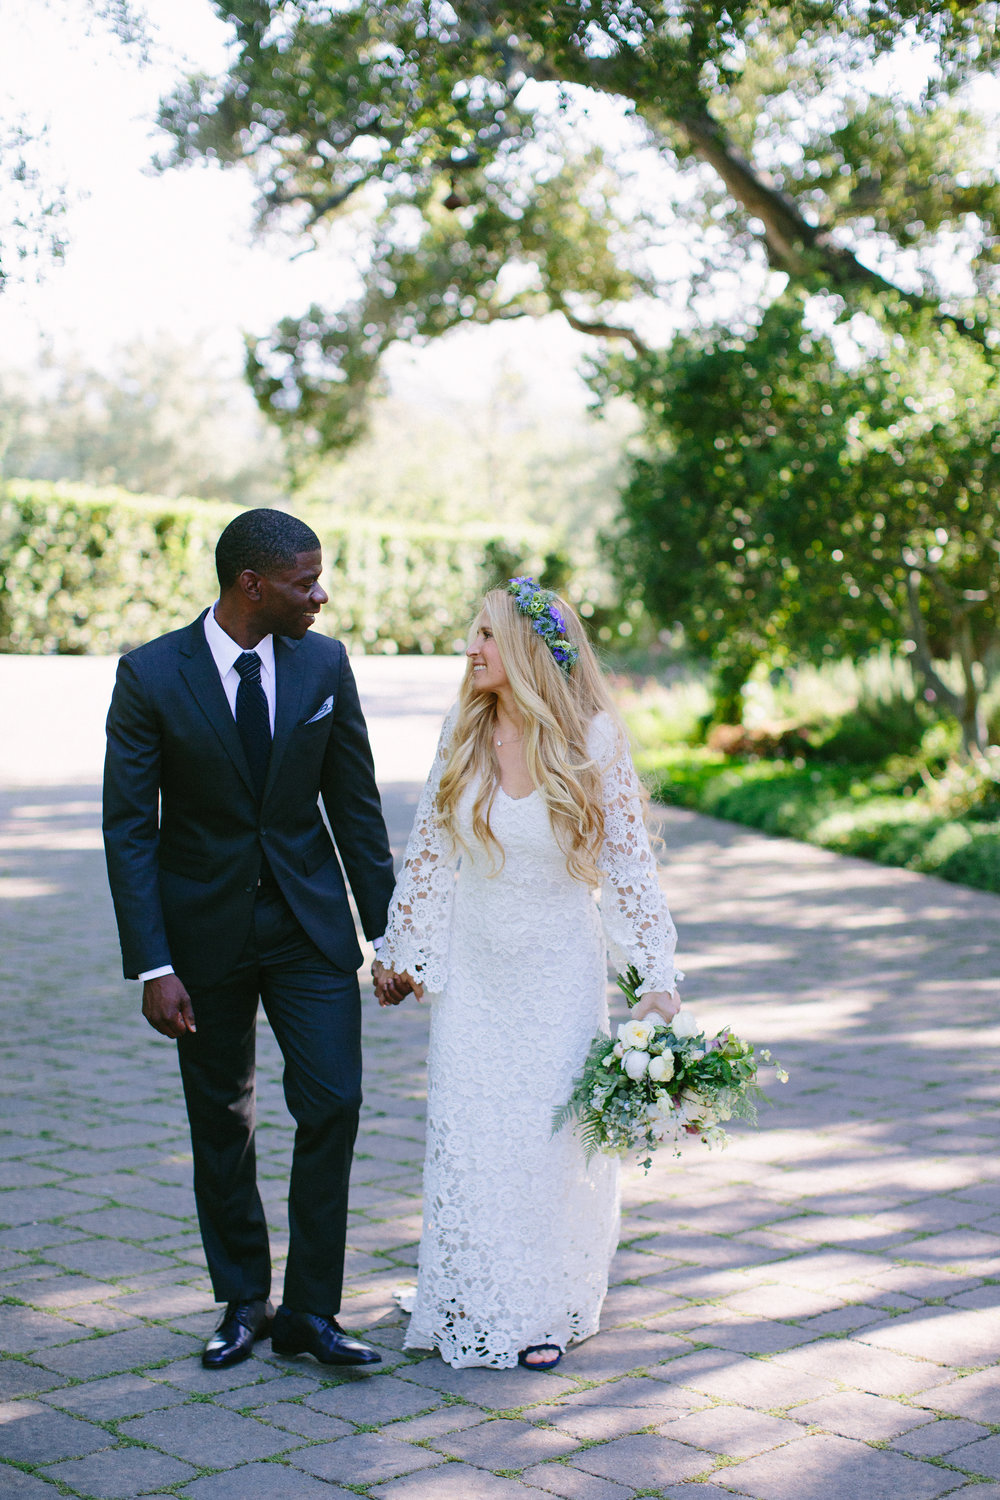 www.santabarbarawedding.com | Millay and Young | Imagine Events | Bride and Groom